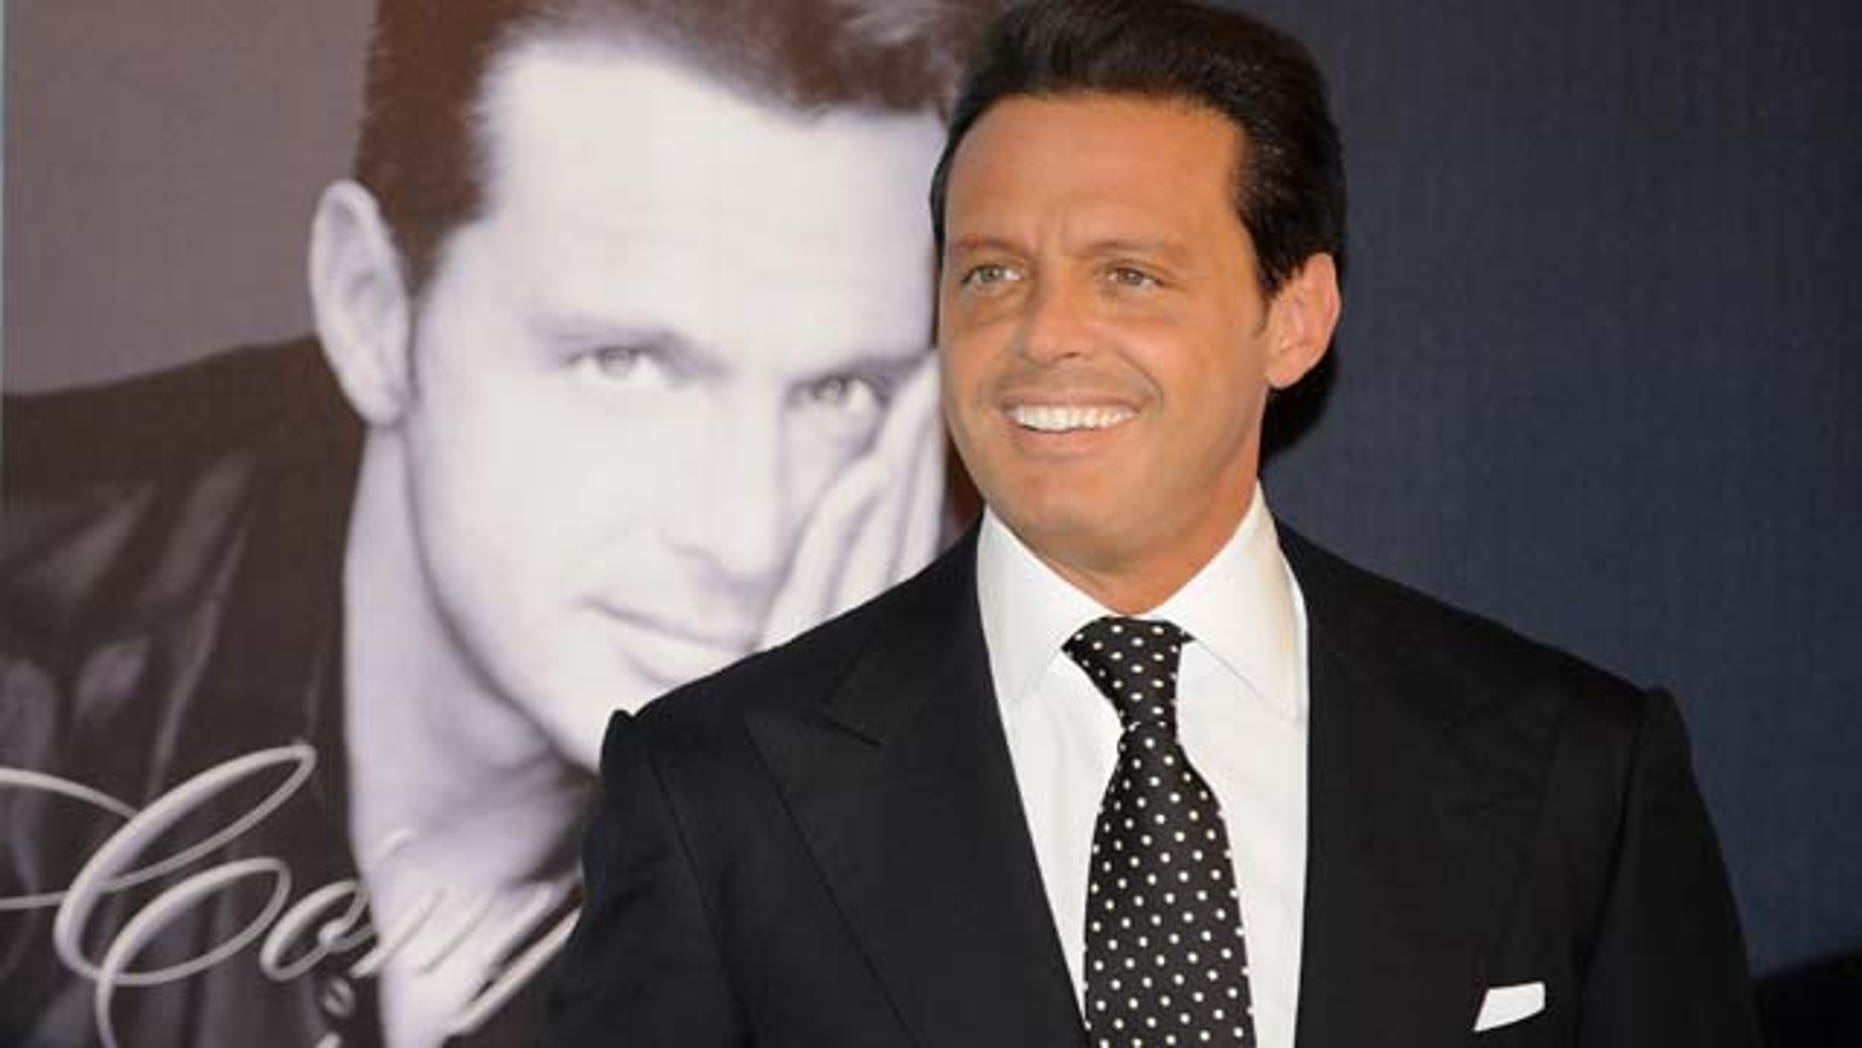 """MADRID, SPAIN - MAY 09:  Mexican singer Luis Miguel attends the photocall to promotes his new album """"Complices"""" on May 09, 2008 at the Palace Hotel in Madrid, Spain.  (Photo by Carlos Alvarez/Getty Images)"""